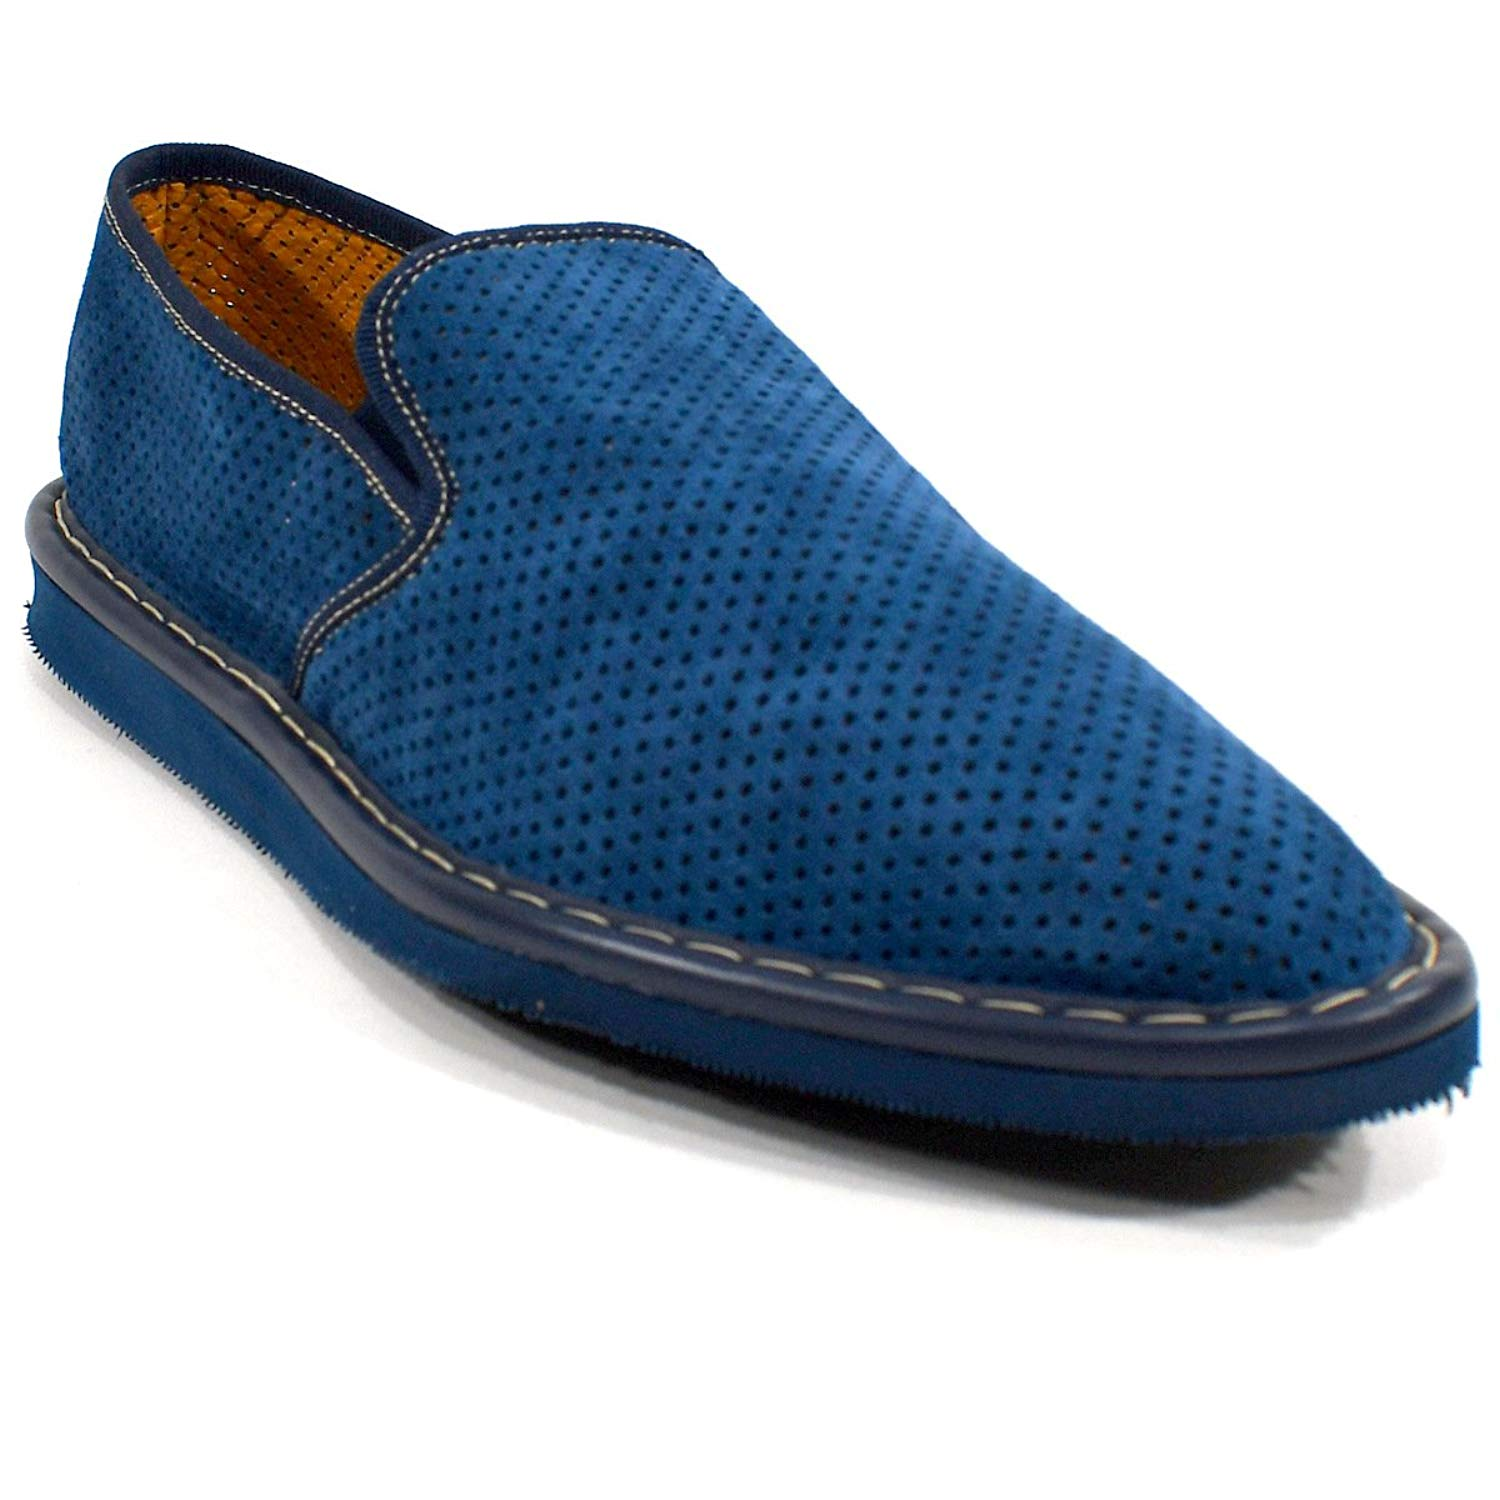 583d4d23f45 Get Quotations · BALDININI Men s Blue Soft Suede Flats Summer Loafers